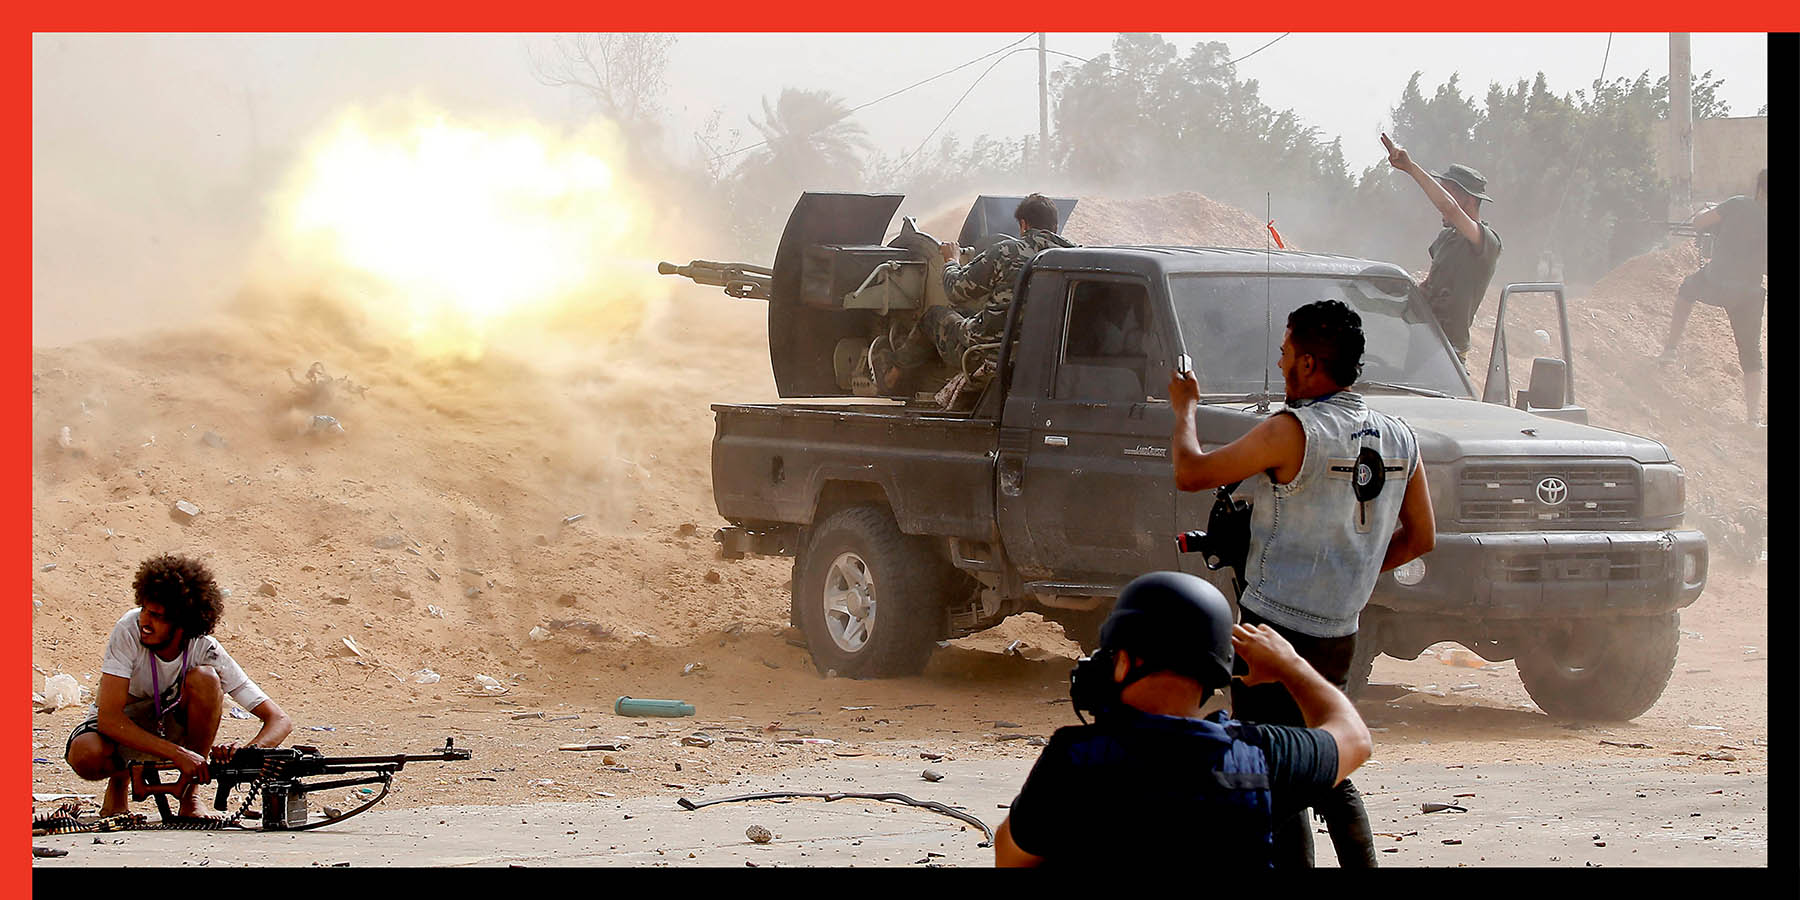 A fighter loyal to the Libyan Government of National Accord fires a machine gun as a photographer take pictures of the scene during clashes against forces loyal to Libya strongman Khalifa Haftar south of Tripoli on May 25.